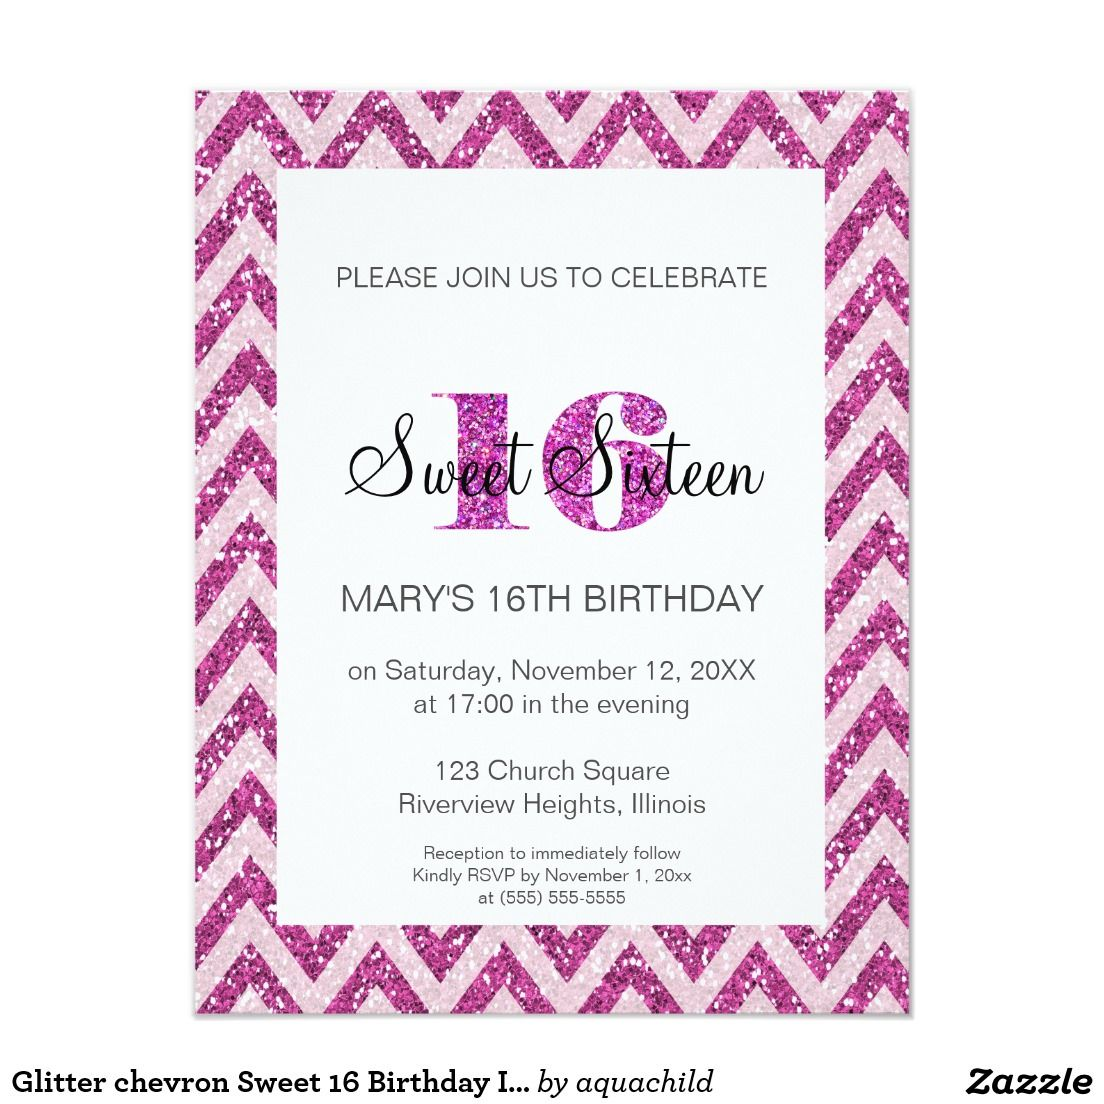 Glitter chevron sweet 16 birthday invitation glitter chevron glitter chevron sweet 16 birthday invitation stopboris Image collections